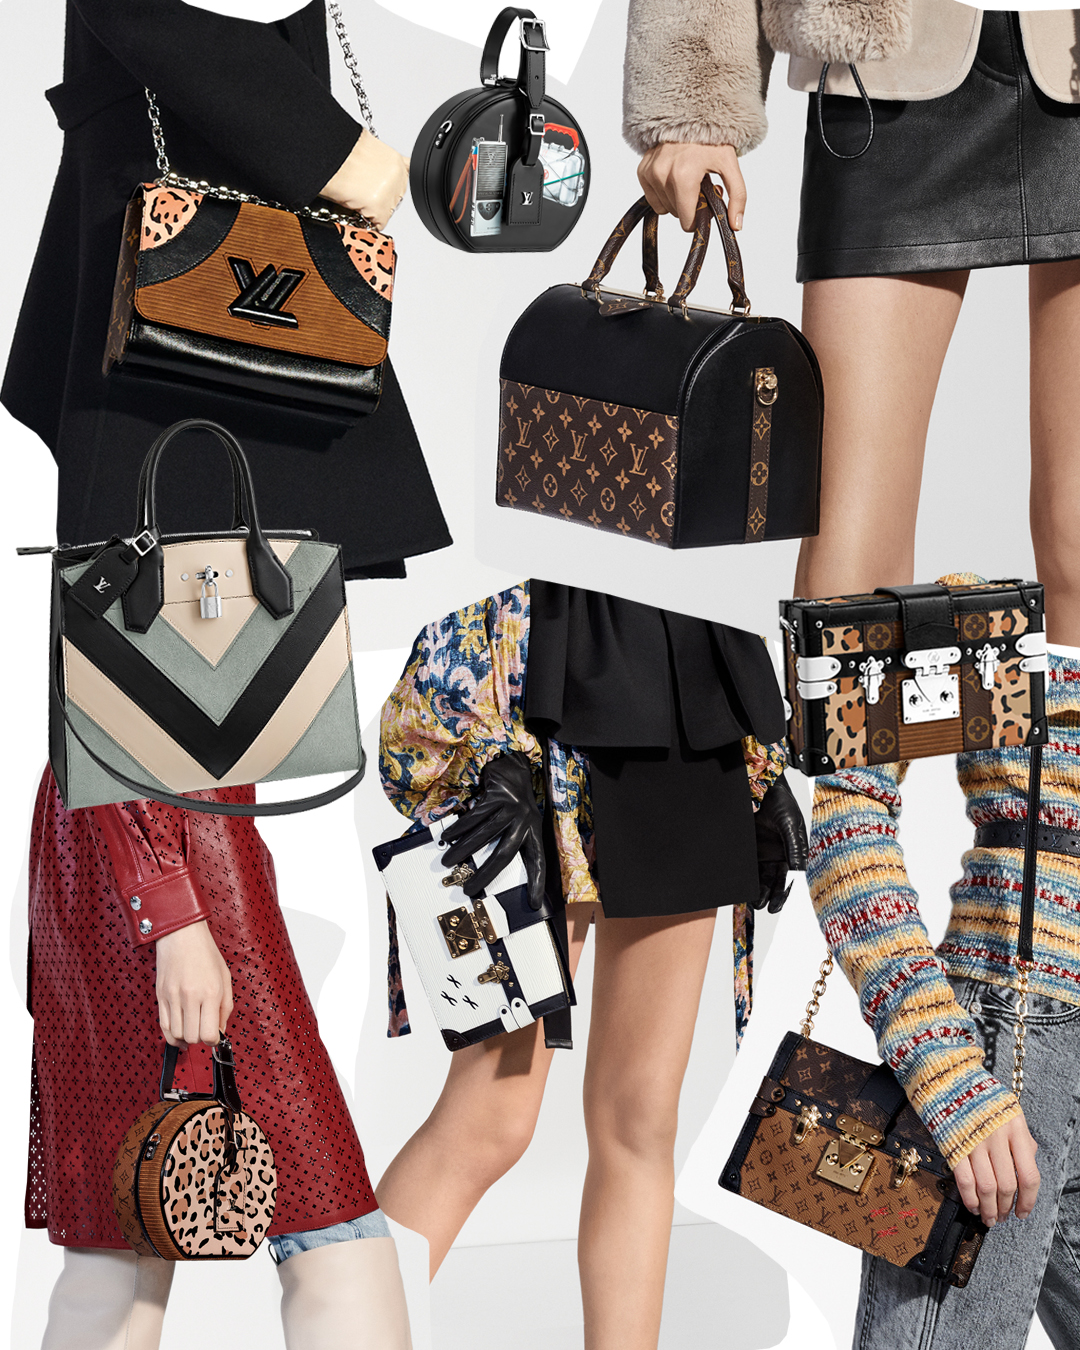 5a6cd1ca4be Louis Vuitton: Pre-Fall 2018 | Curatedition